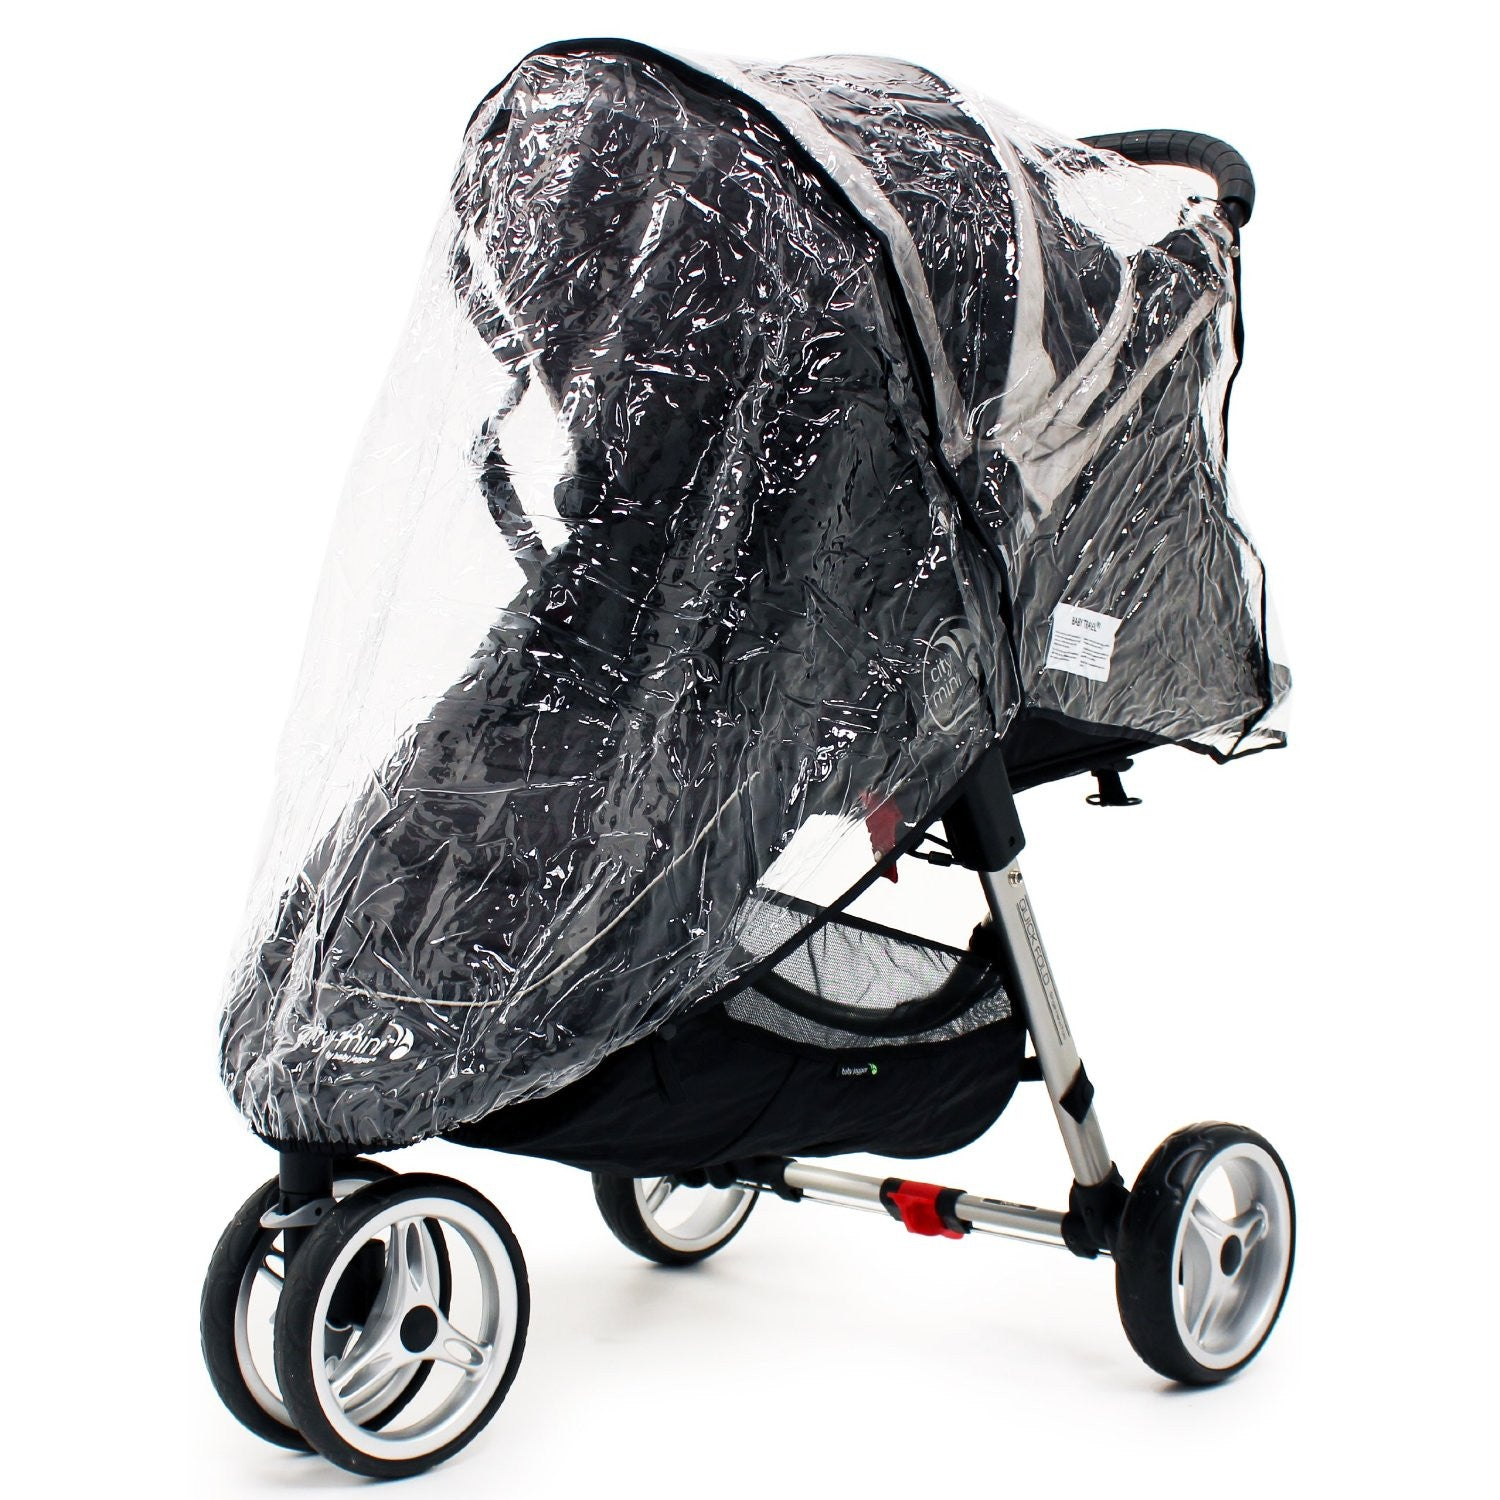 Details about Universal Raincover To Fit Quinny Zapp, Quinny Zapp Xtra Pushchair, Buggy